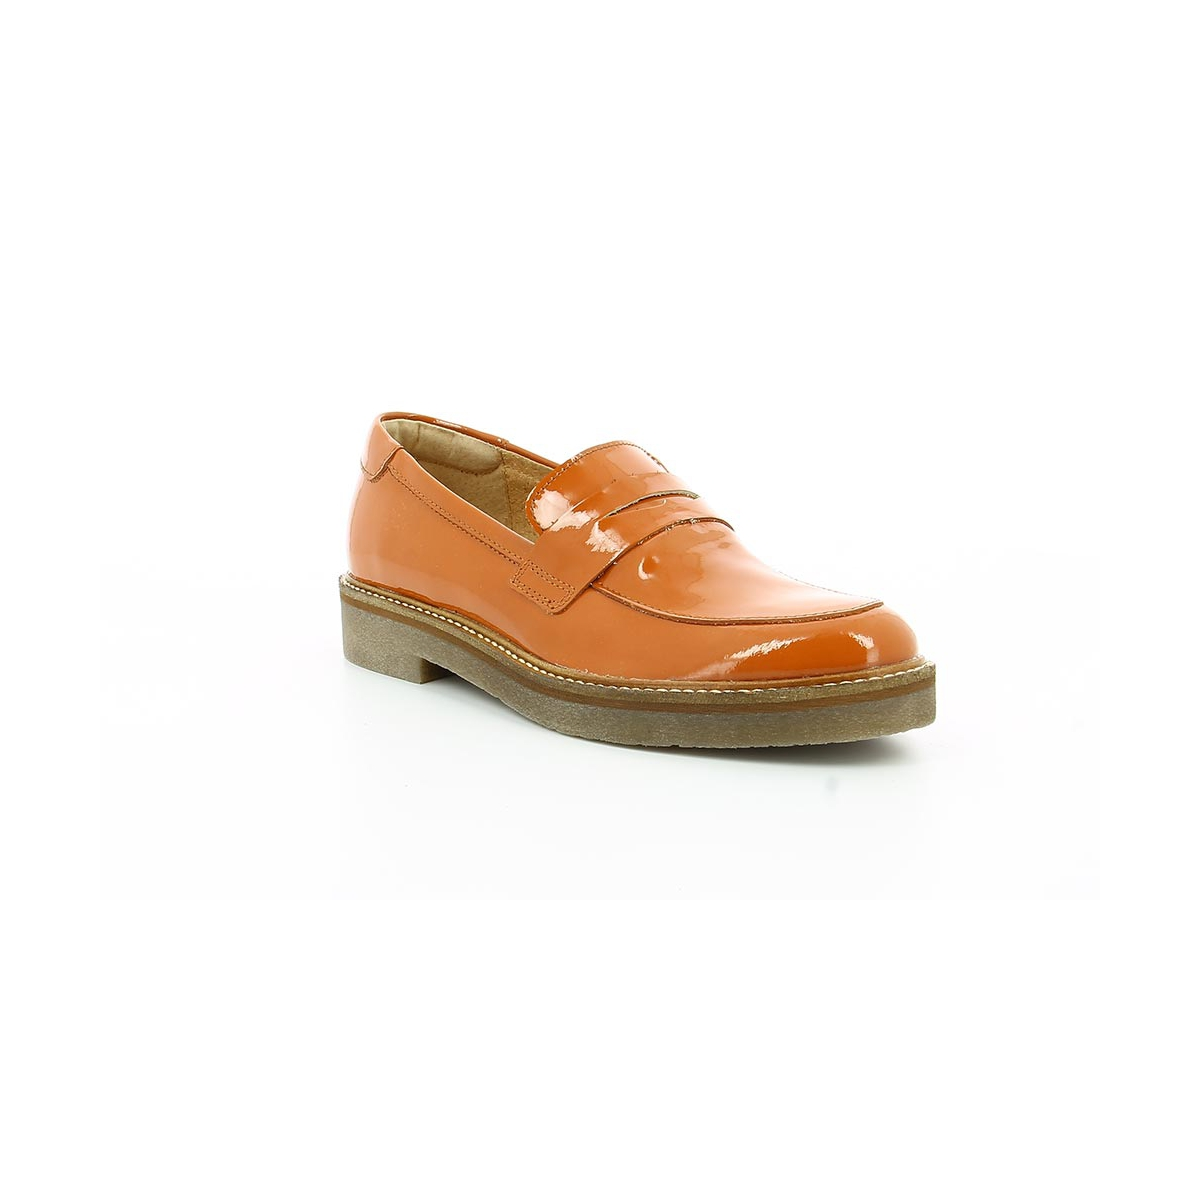 Oxmox - Mocassins Femmes / Kickers Orange dUAODS